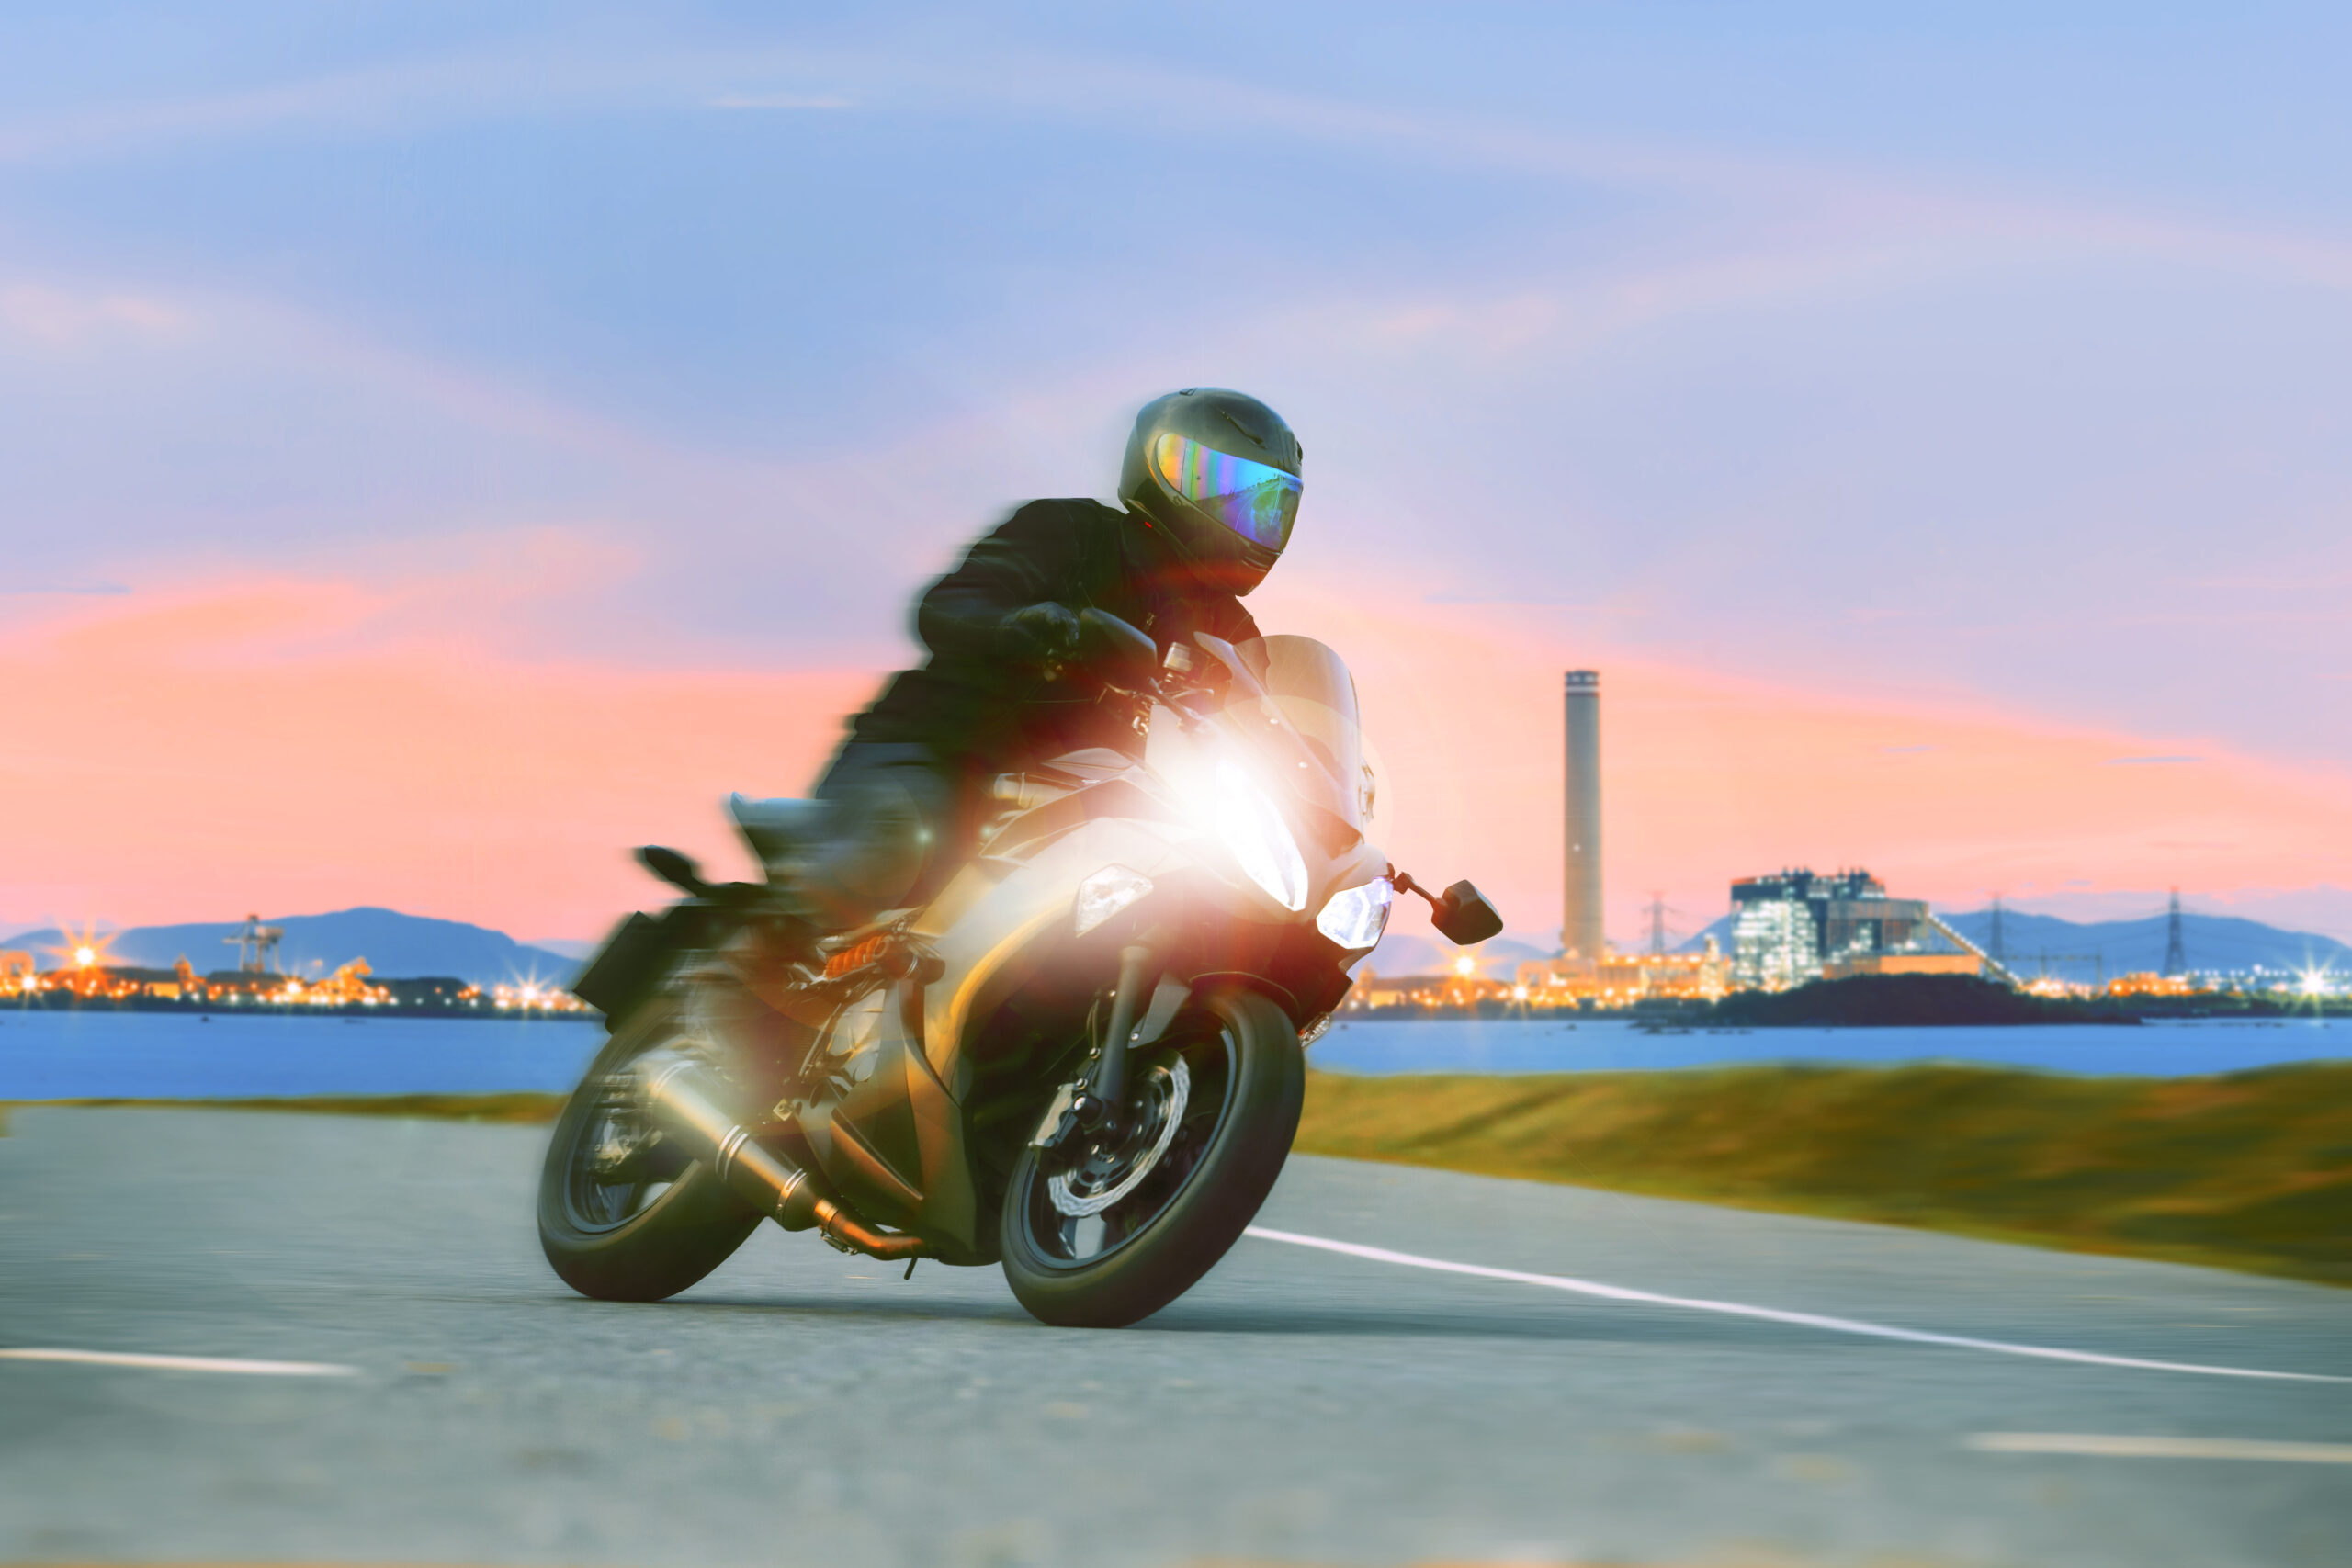 Motorcycle insurance for new riders